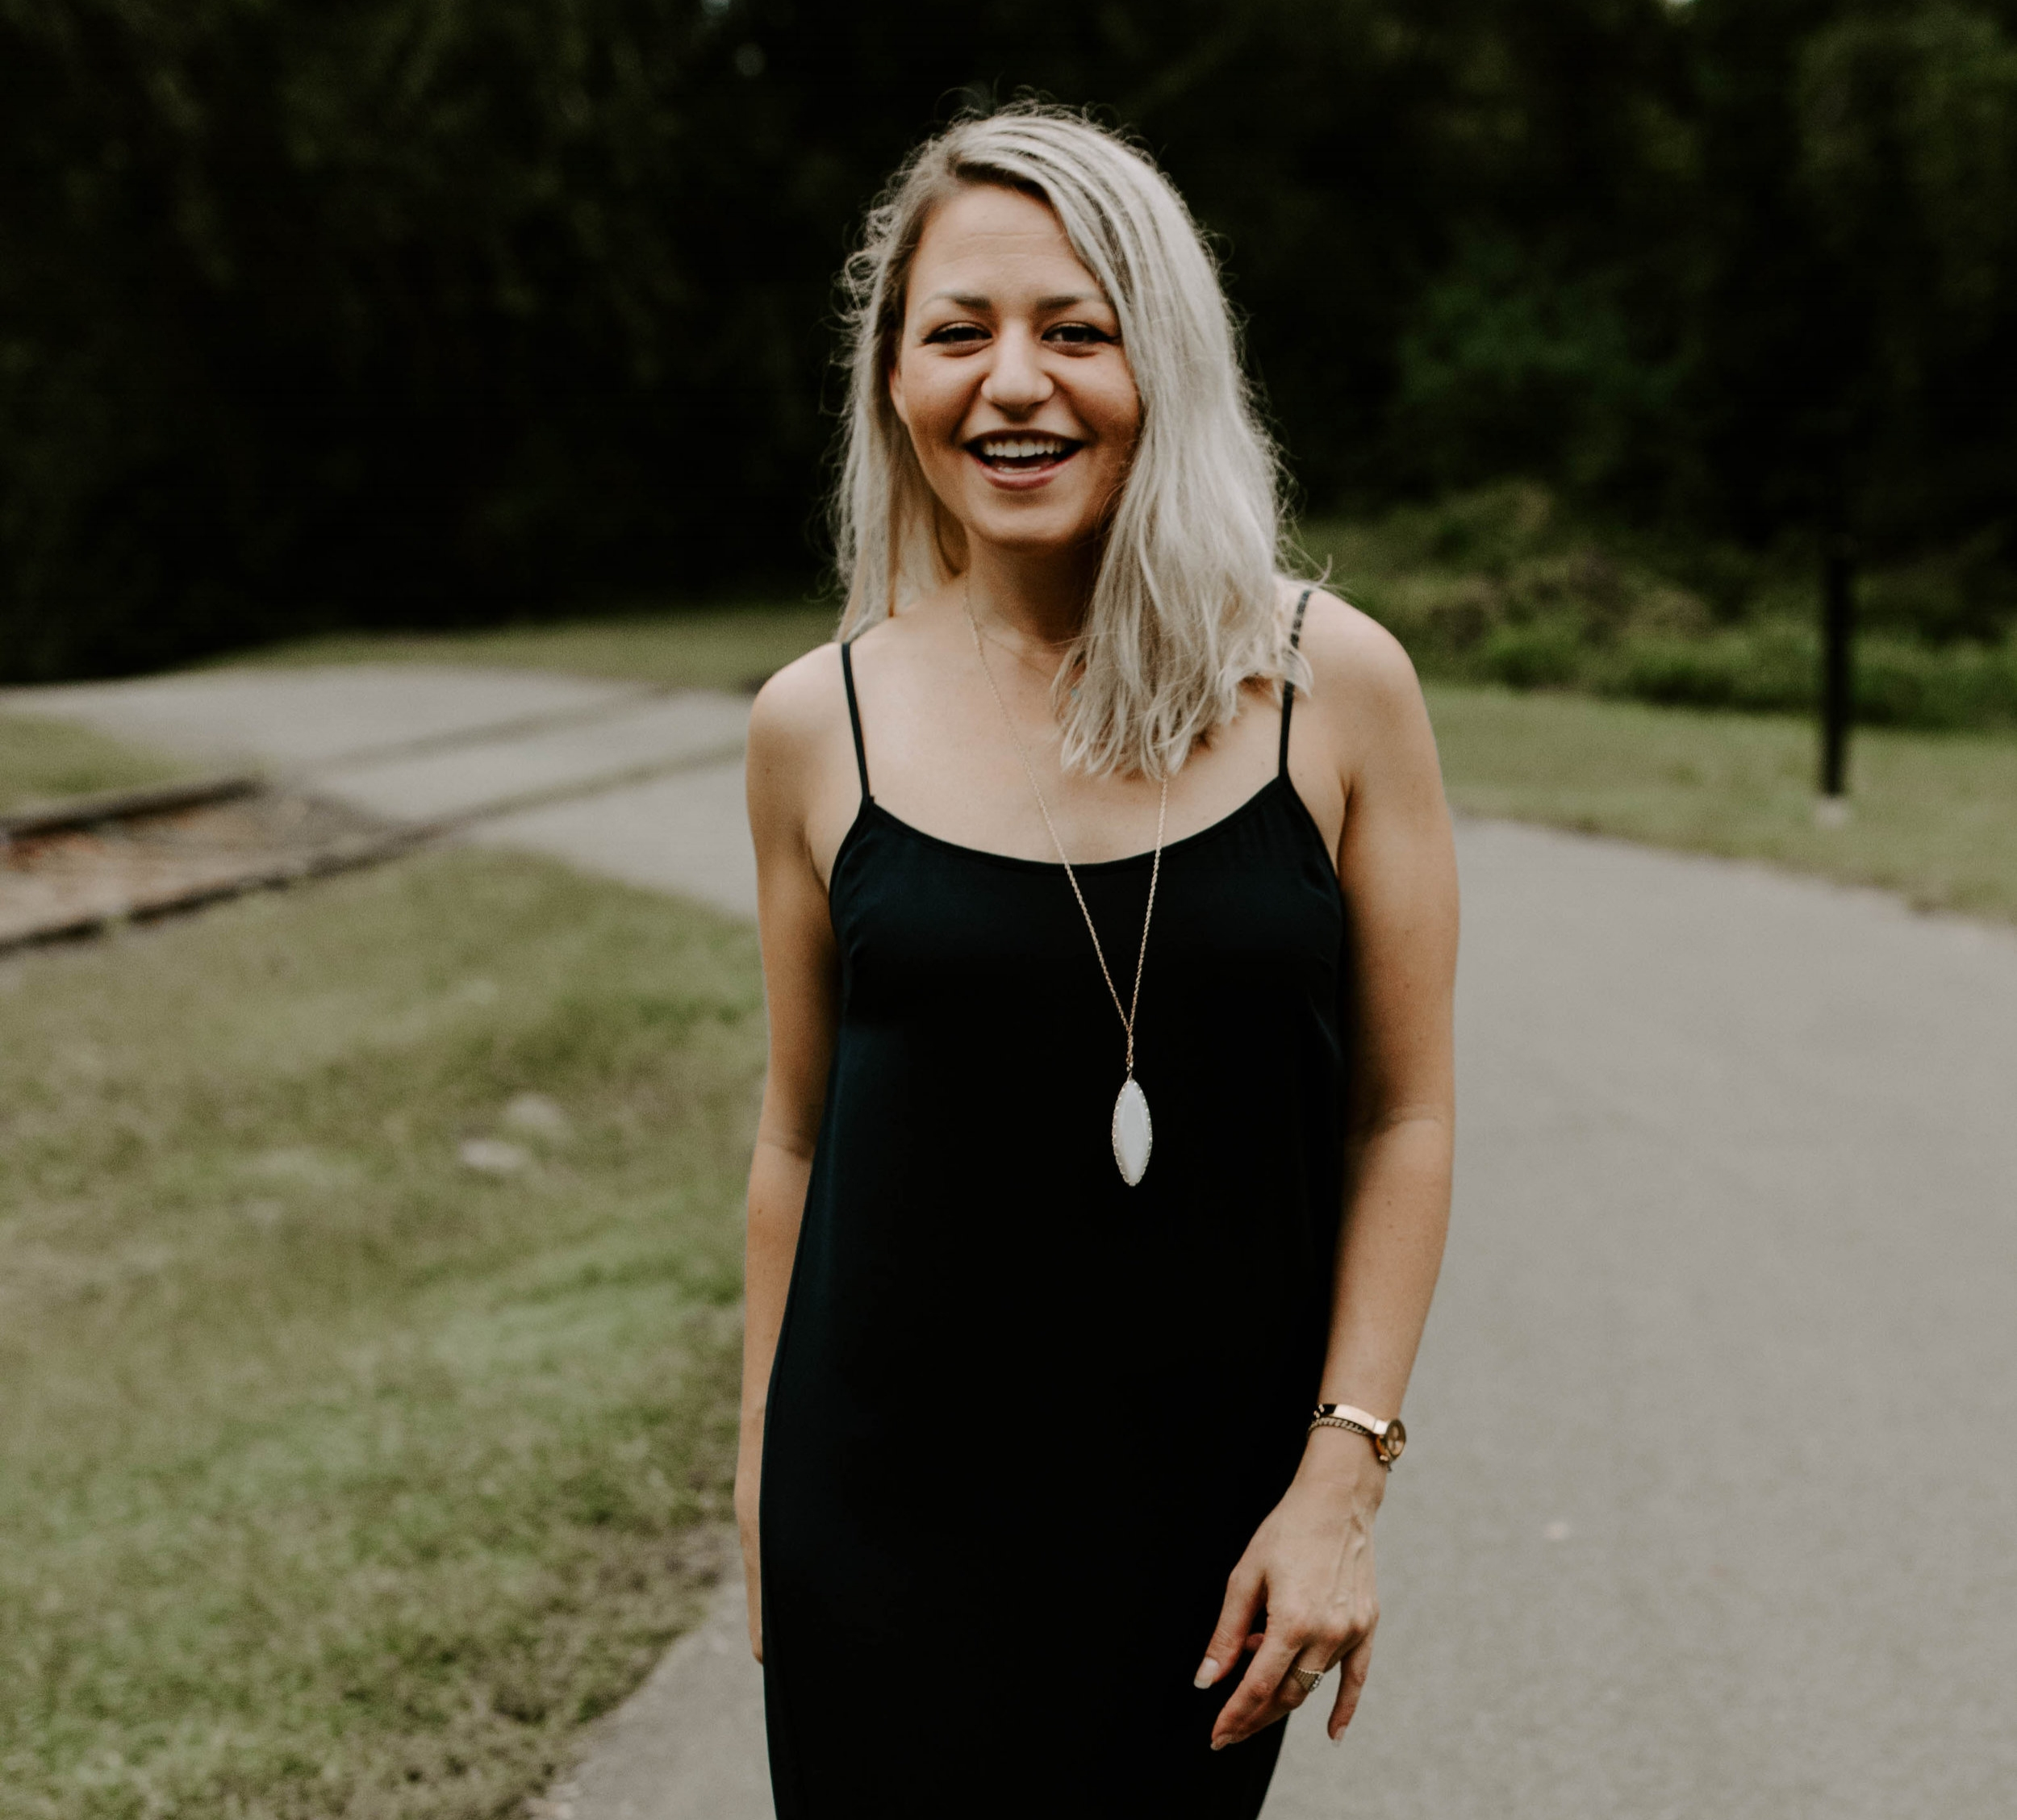 Meet Marli. - One day, Marli decided to launch a new online business — and she didn't want to spend 2+ years figuring it out all by herself.Most importantly, she was willing to invest in herself to fast-track her success.